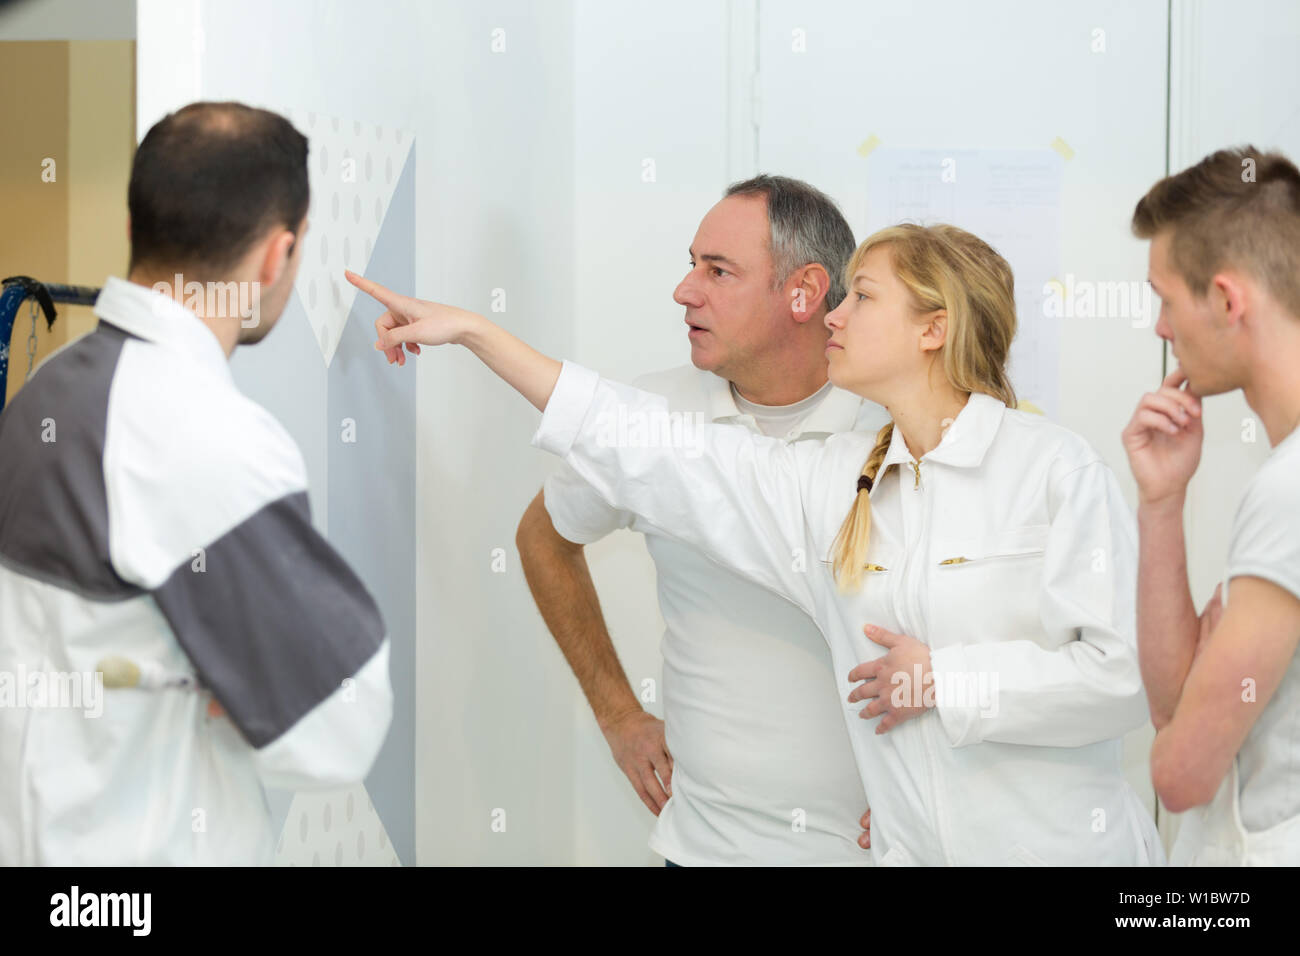 co-workers apprentice during class - Stock Image